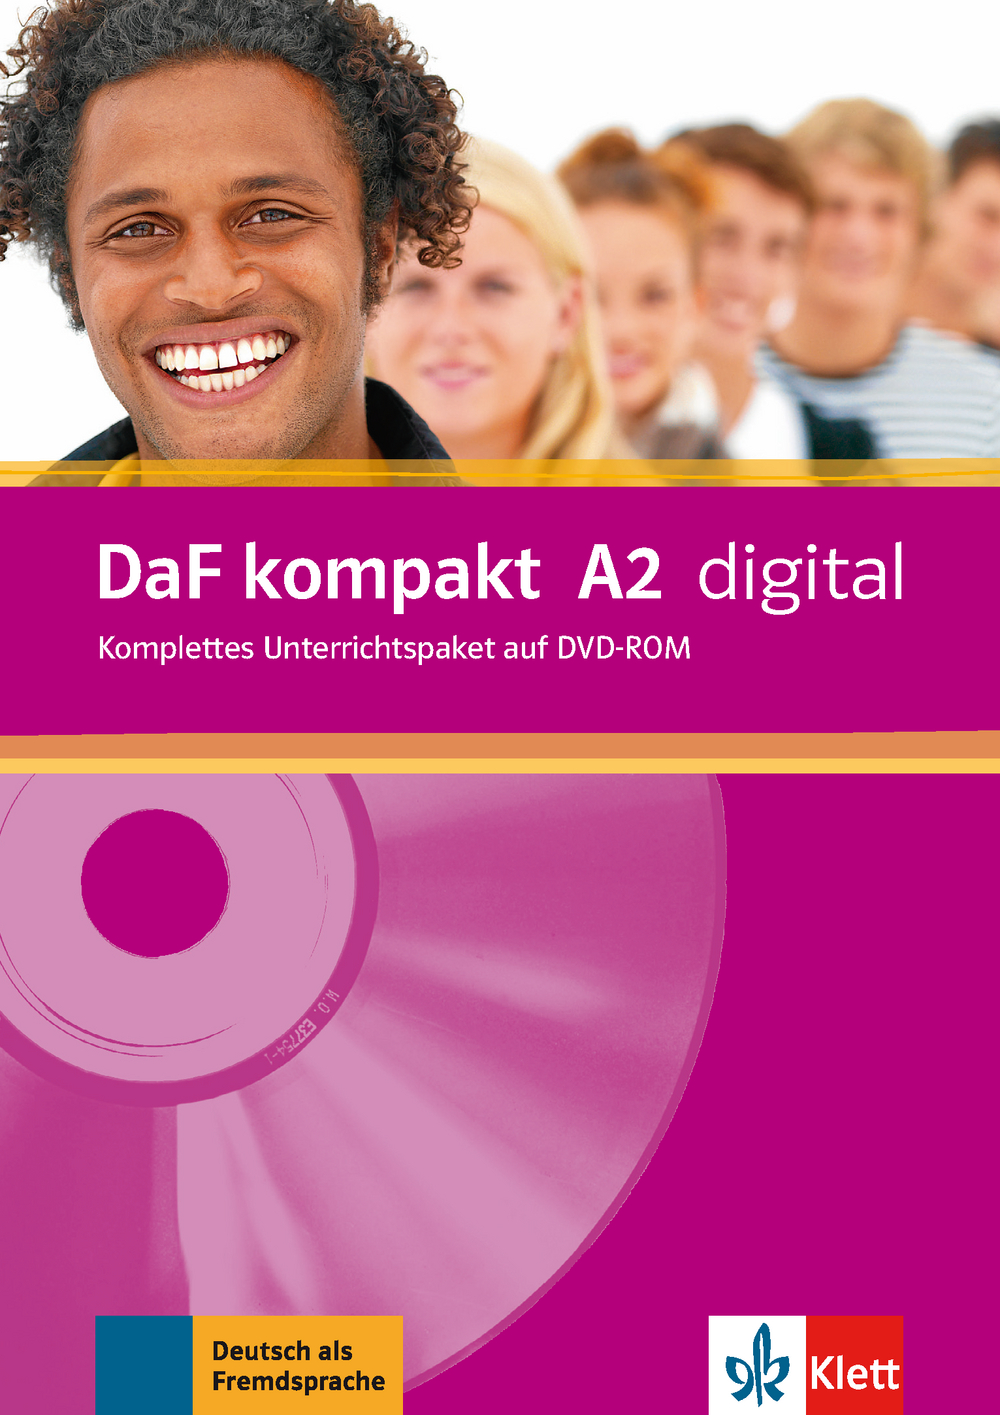 DaF kompakt A2 digital